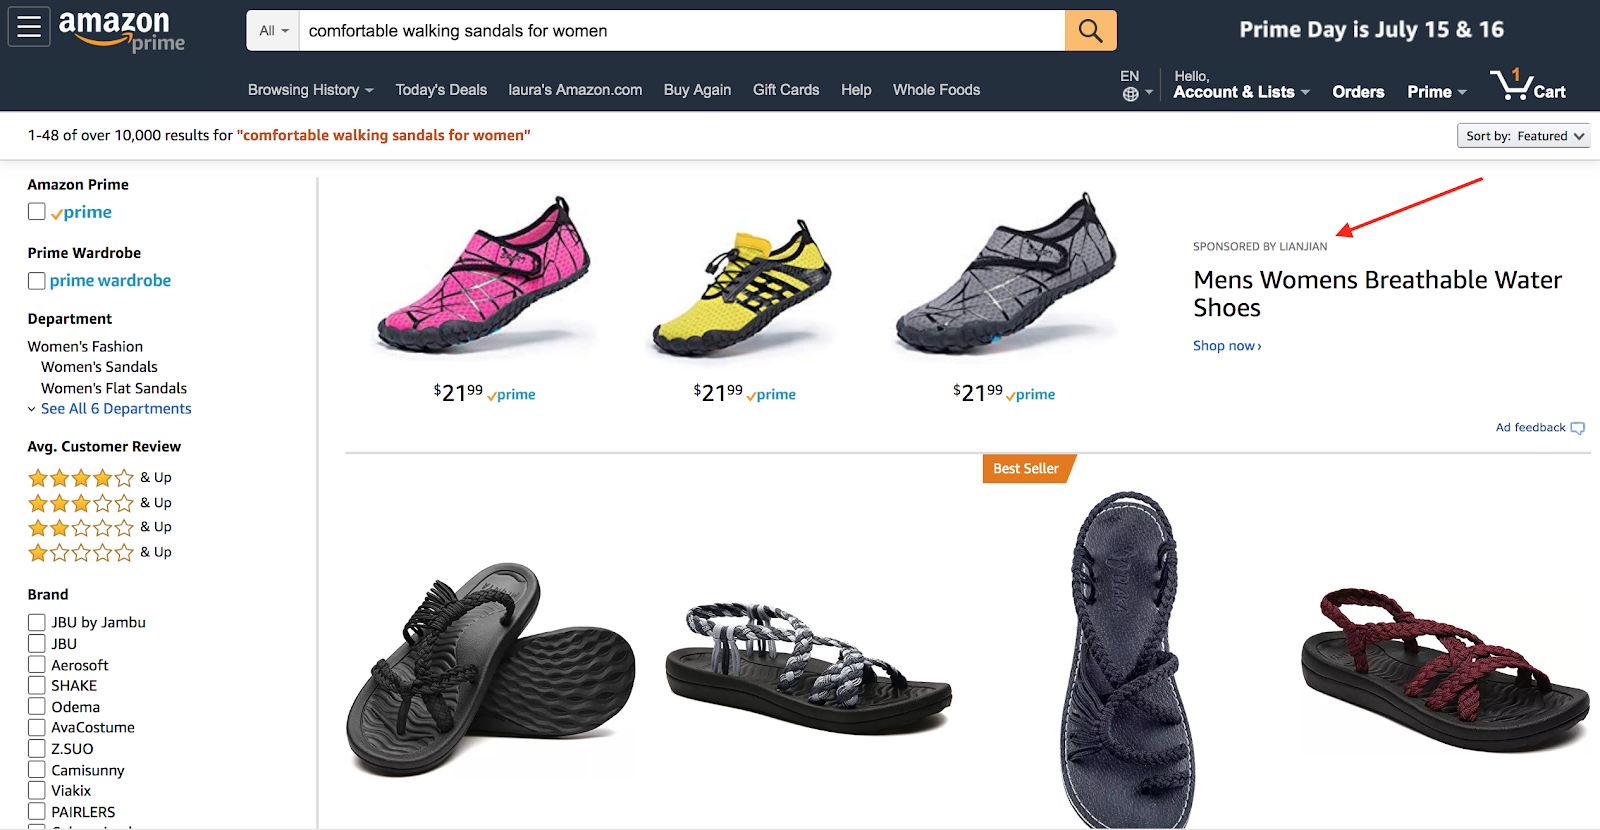 Product Listing Ad Examples | 8 Tips to Crush Your Q4 eCommerce Marketing Plan